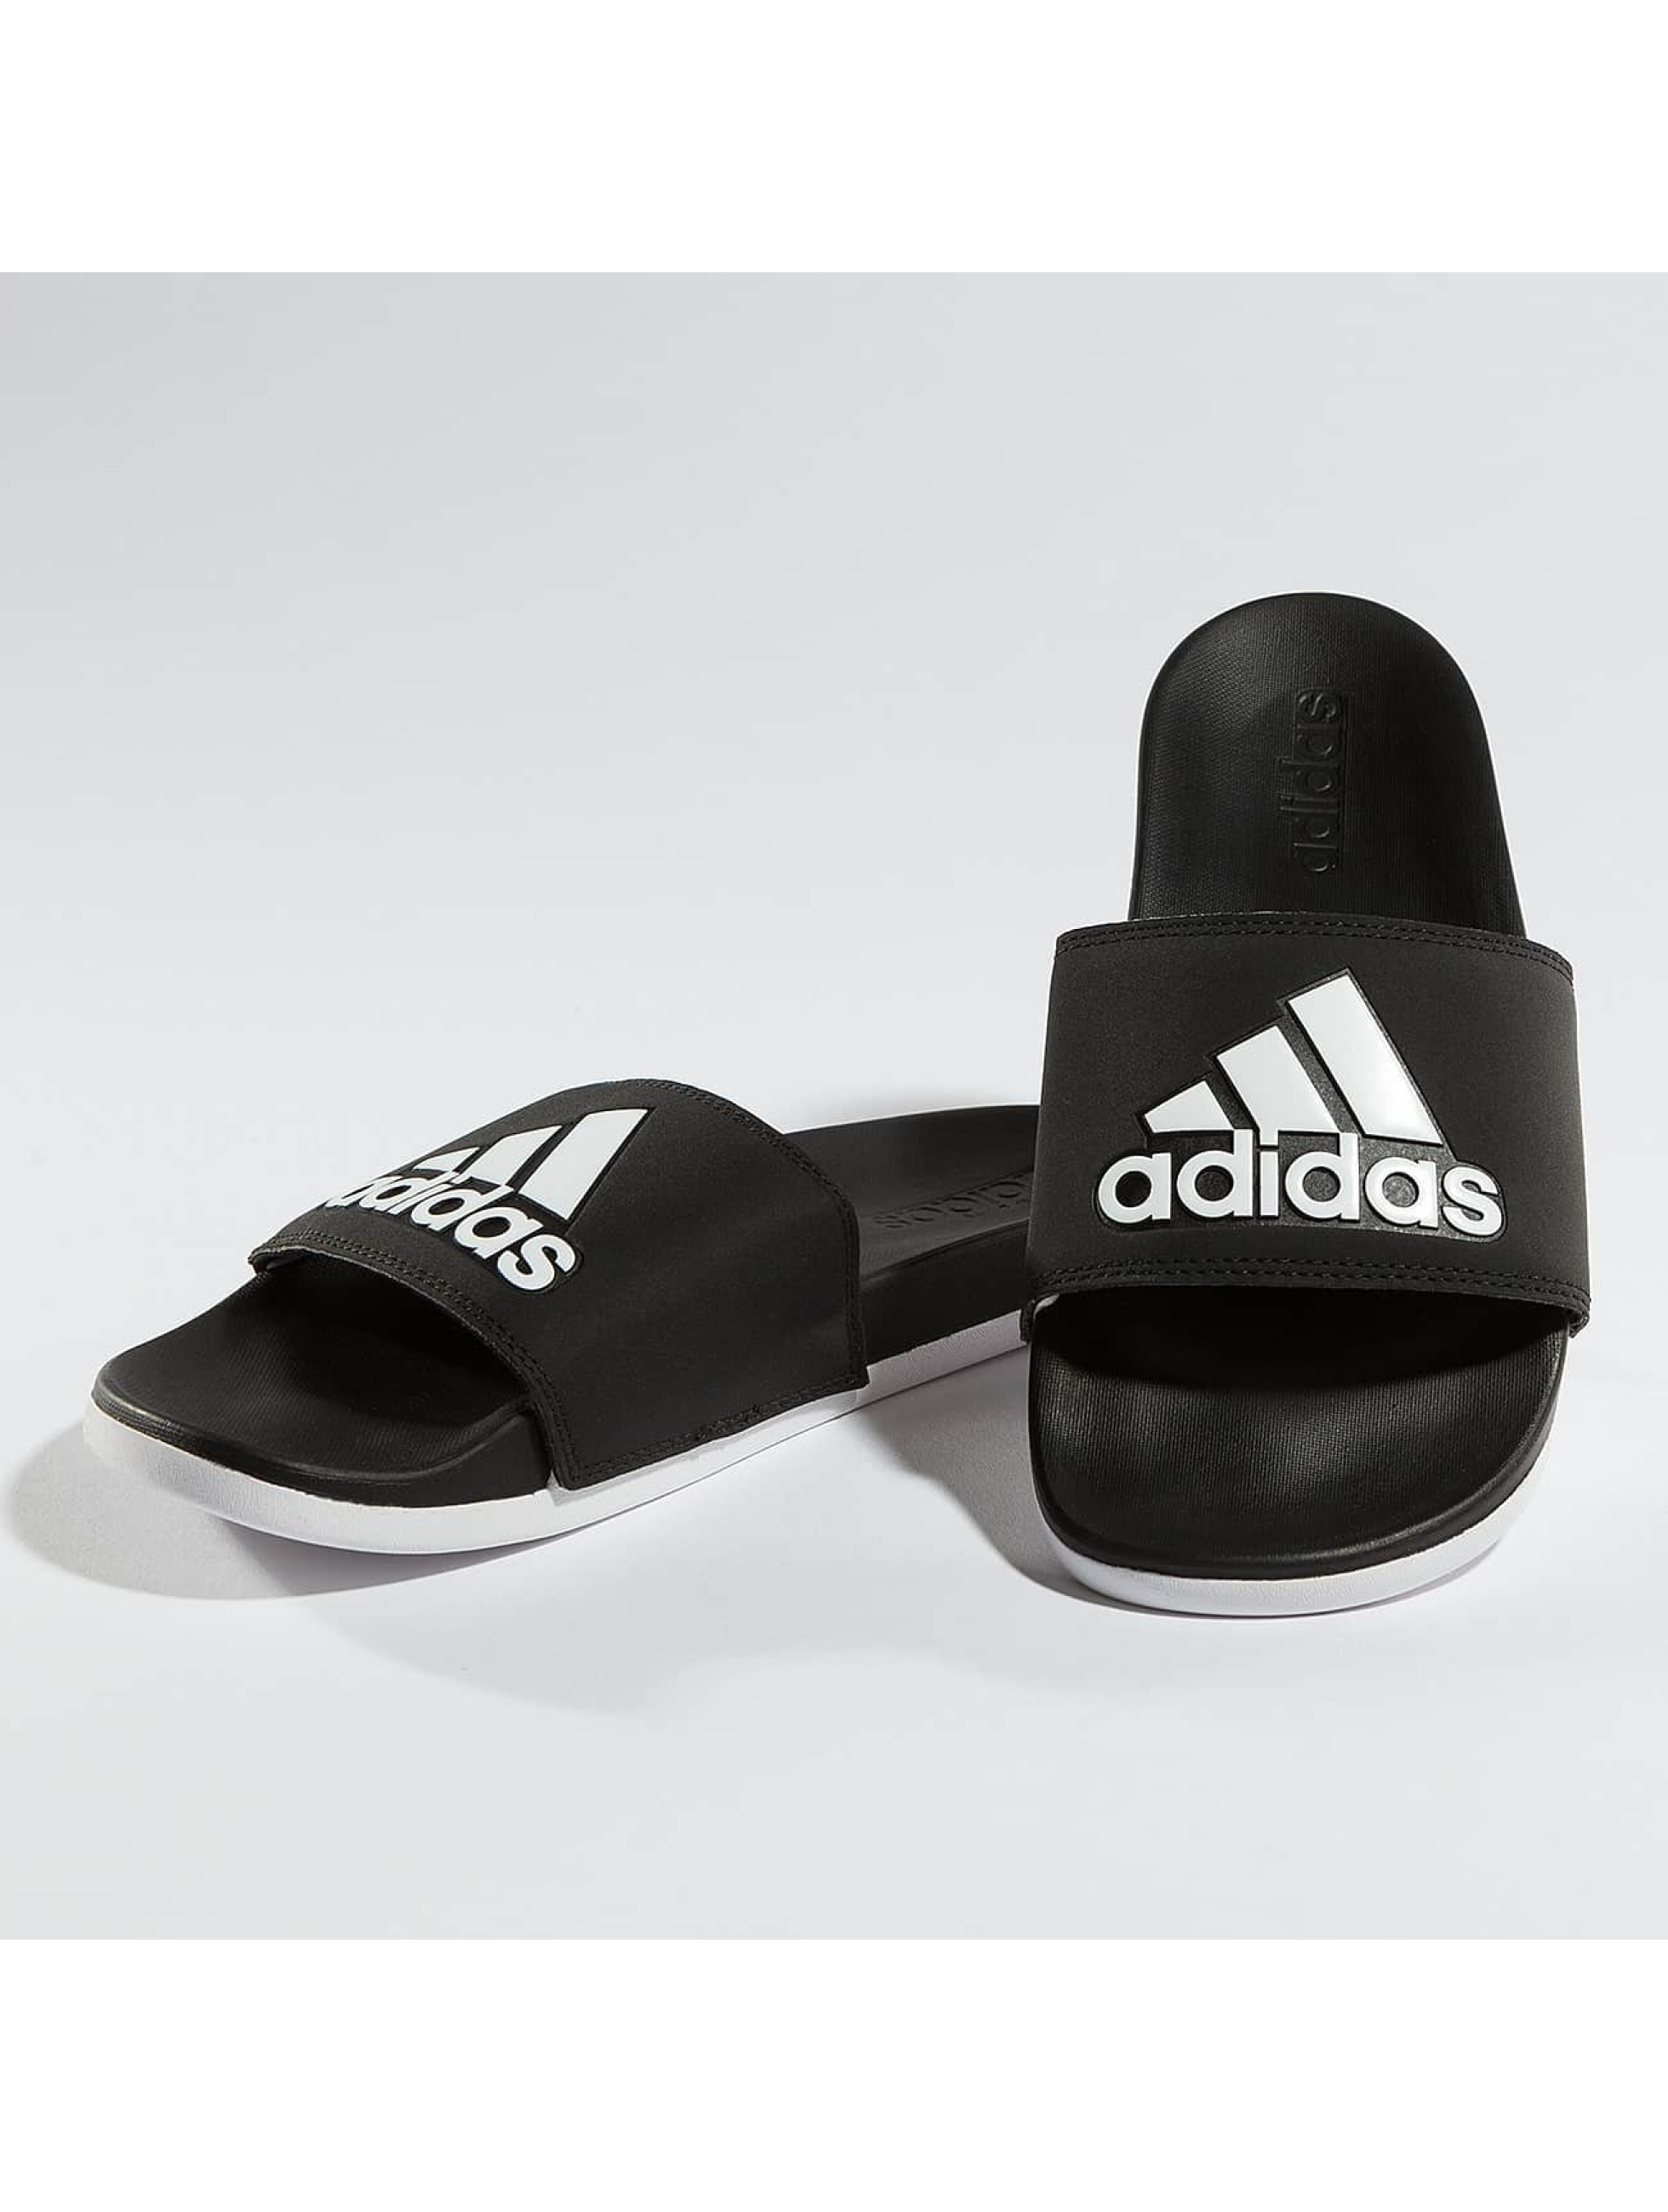 adidas performance herren schuhe sandalen adilette. Black Bedroom Furniture Sets. Home Design Ideas